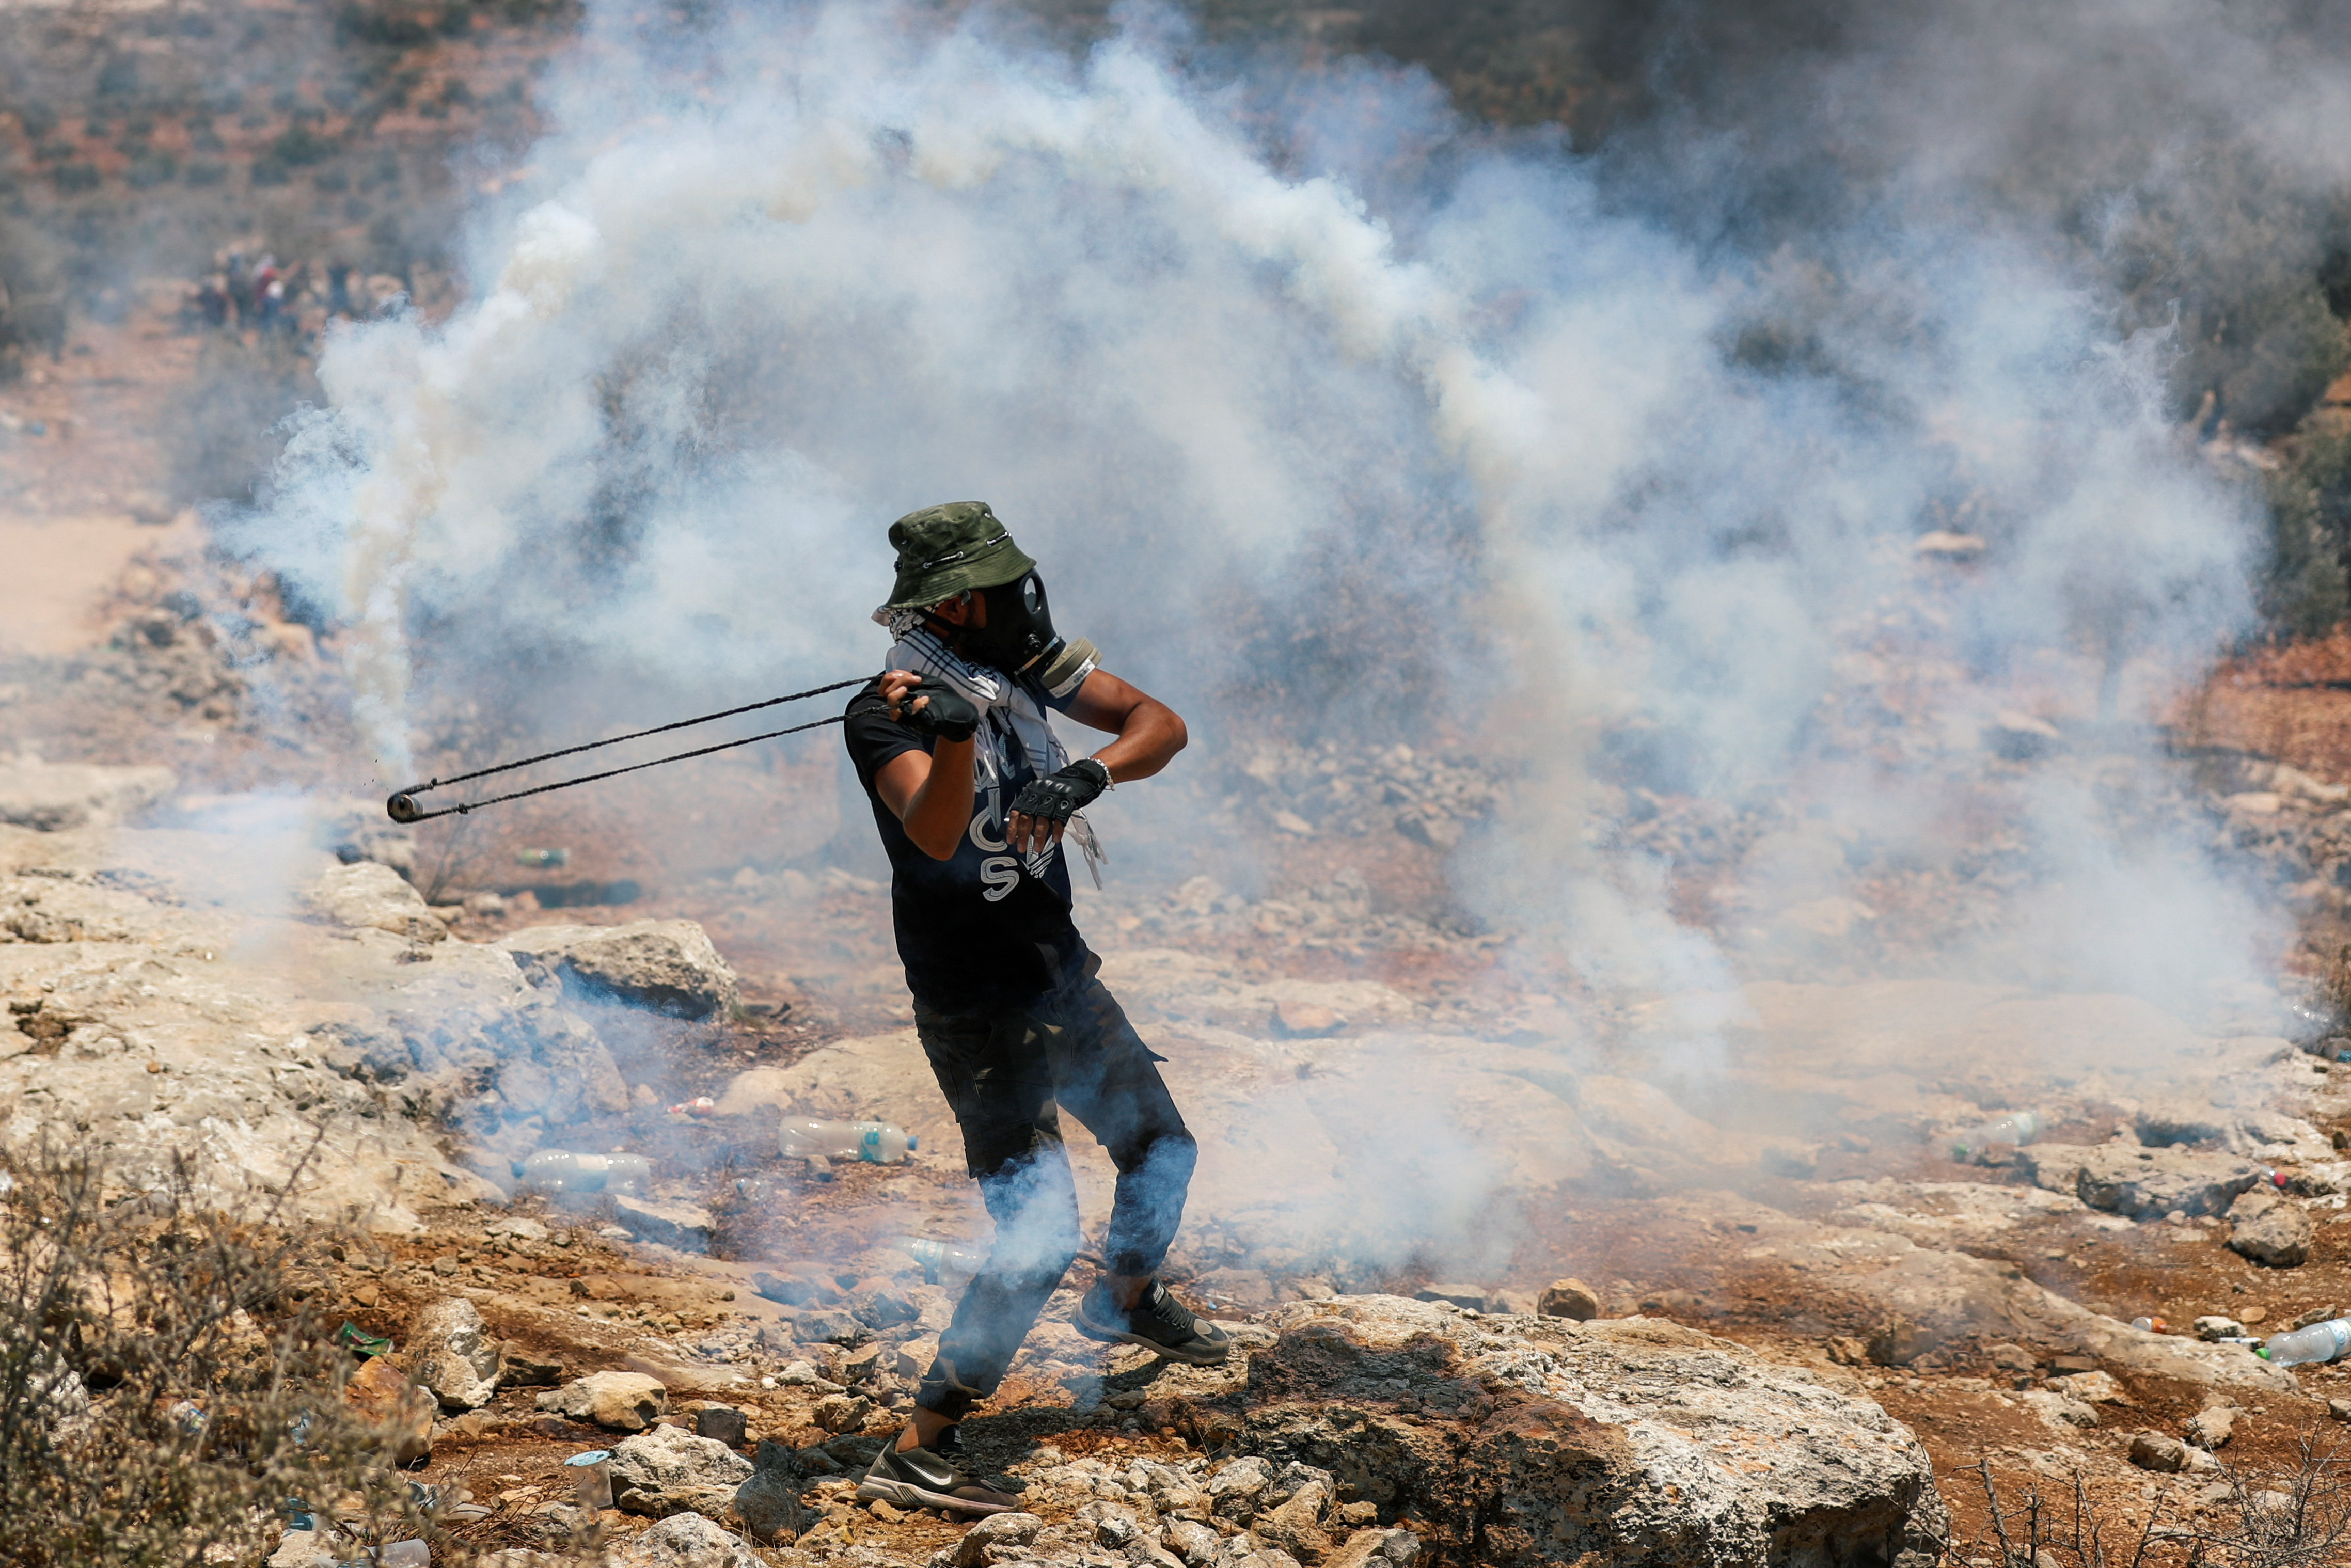 A Palestinian demonstrator uses a slingshot during a protest against Israeli settlements, in Beita, in the Israeli-occupied West Bank July 9, 2021. REUTERS/Mohamad Torokman